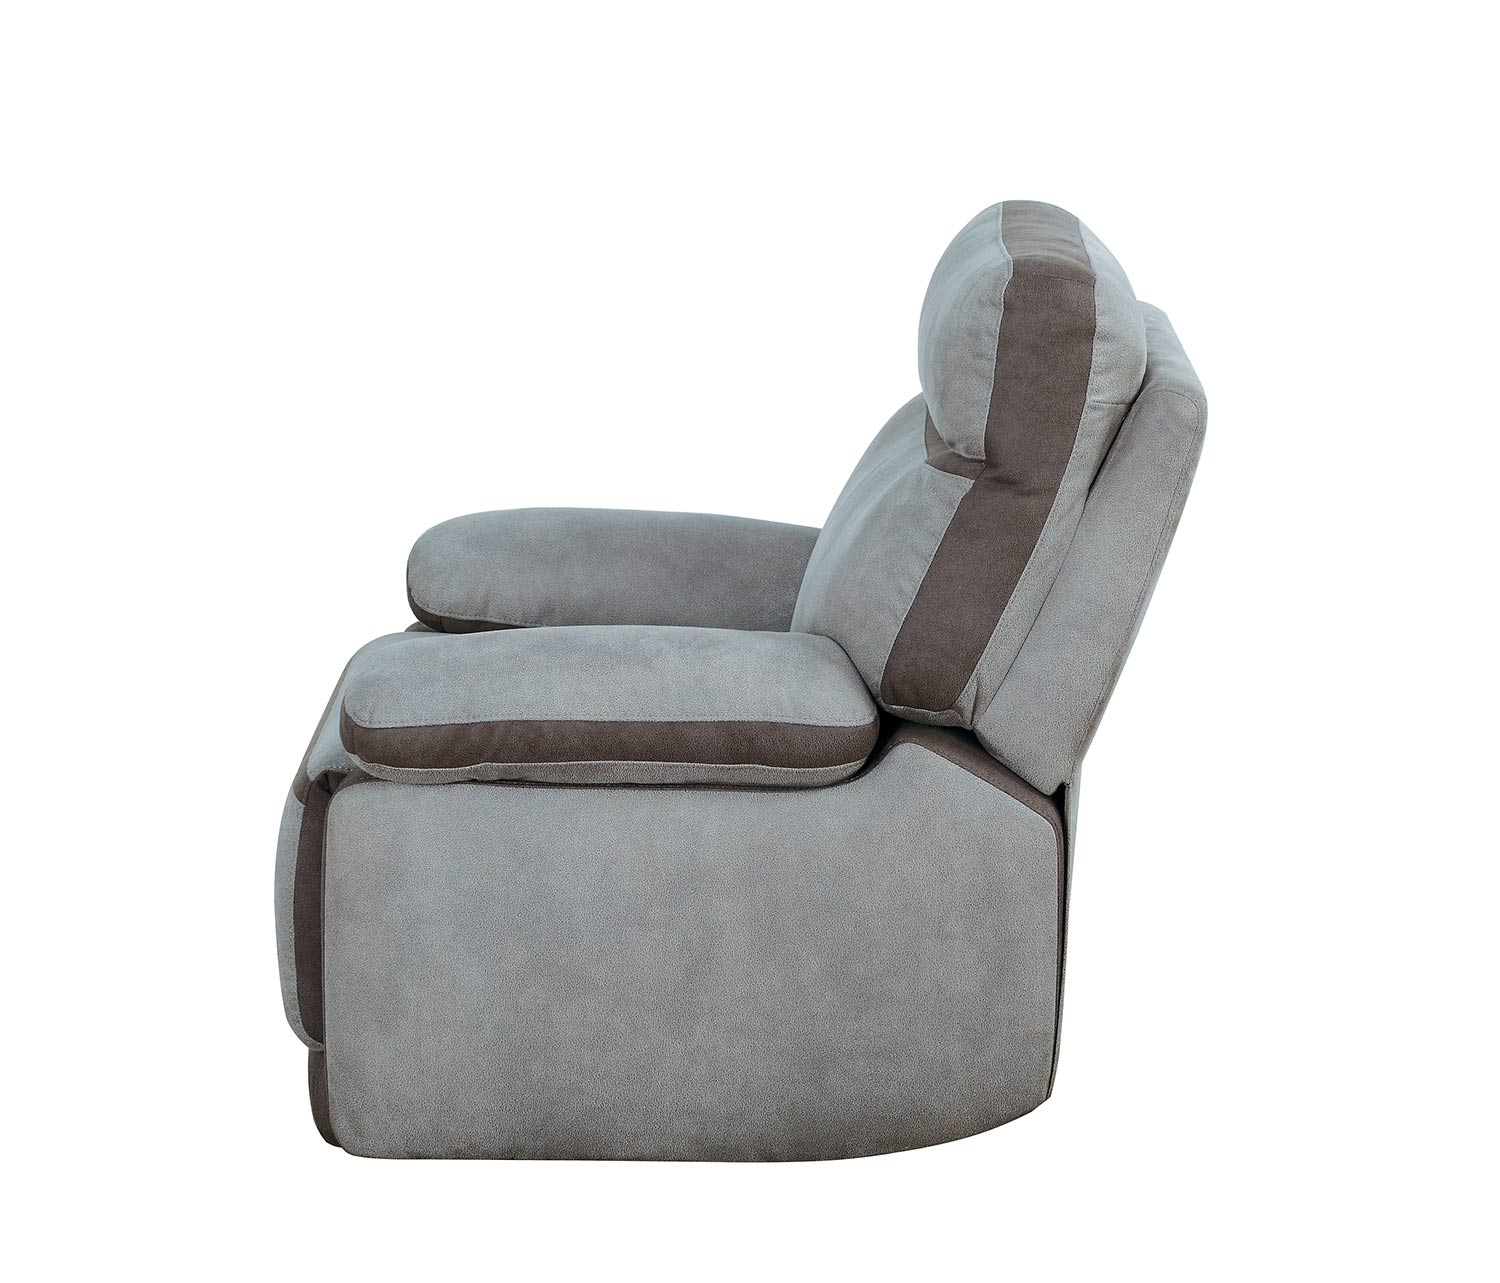 Homelegance Barilotto Power Reclining Chair With Power Headrest - Gray